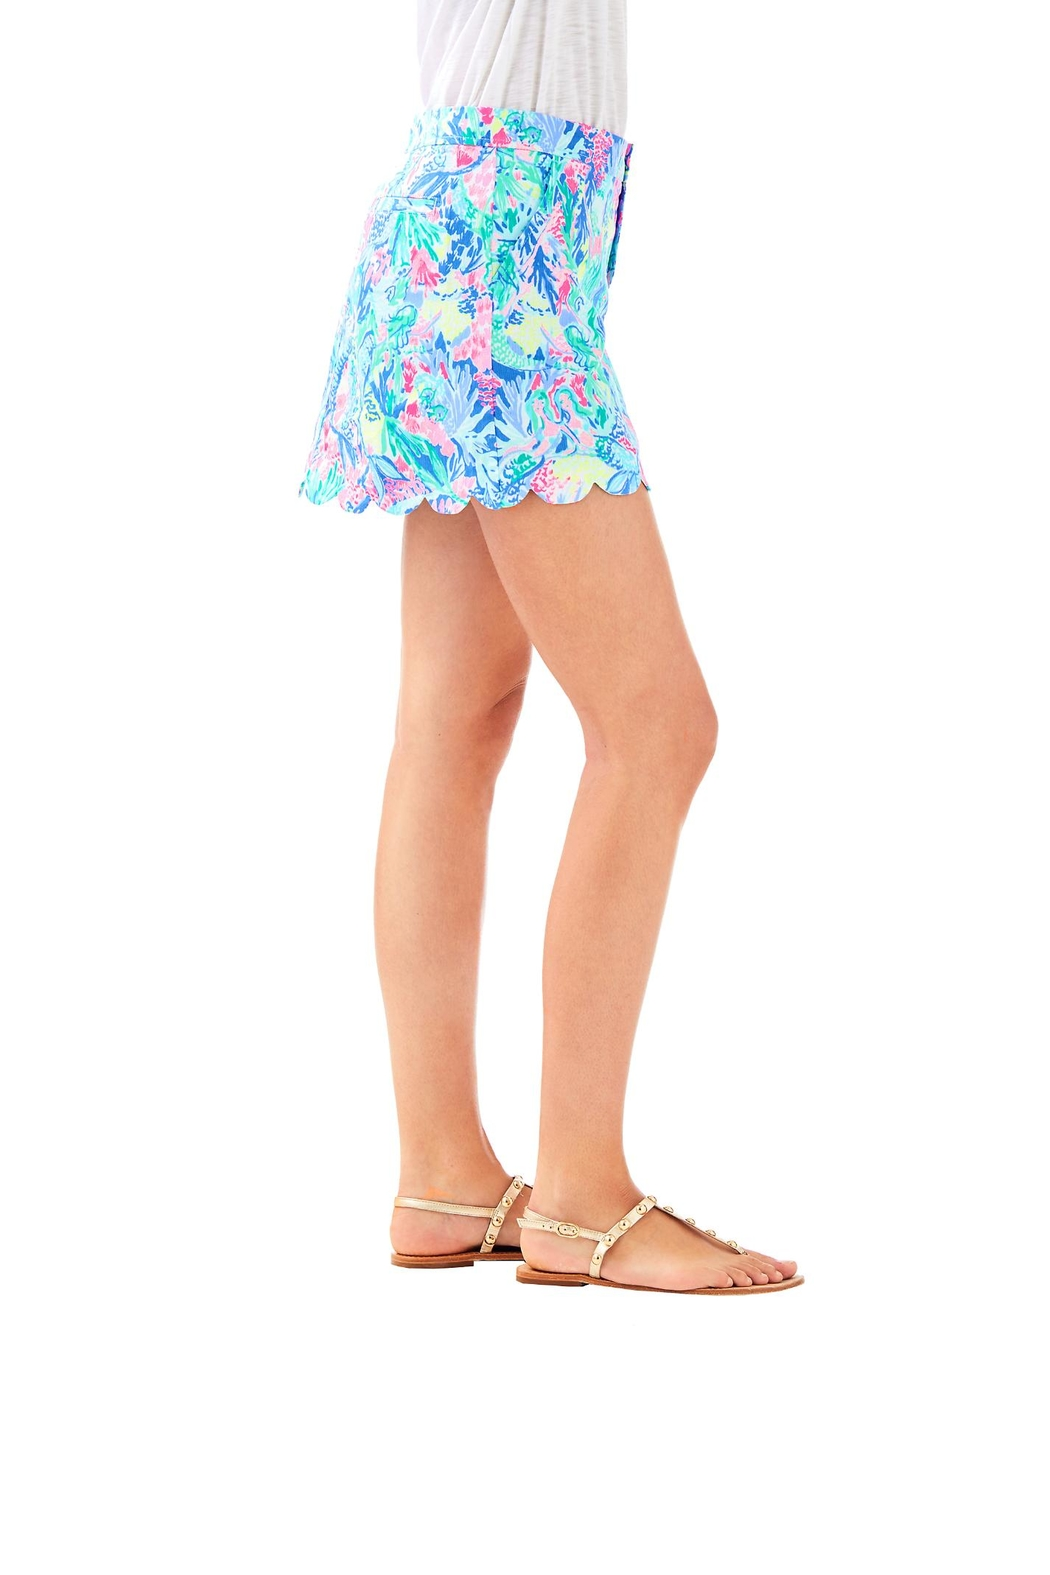 Lilly Pulitzer Colette Scallop-Hem Skort - Side Cropped Image